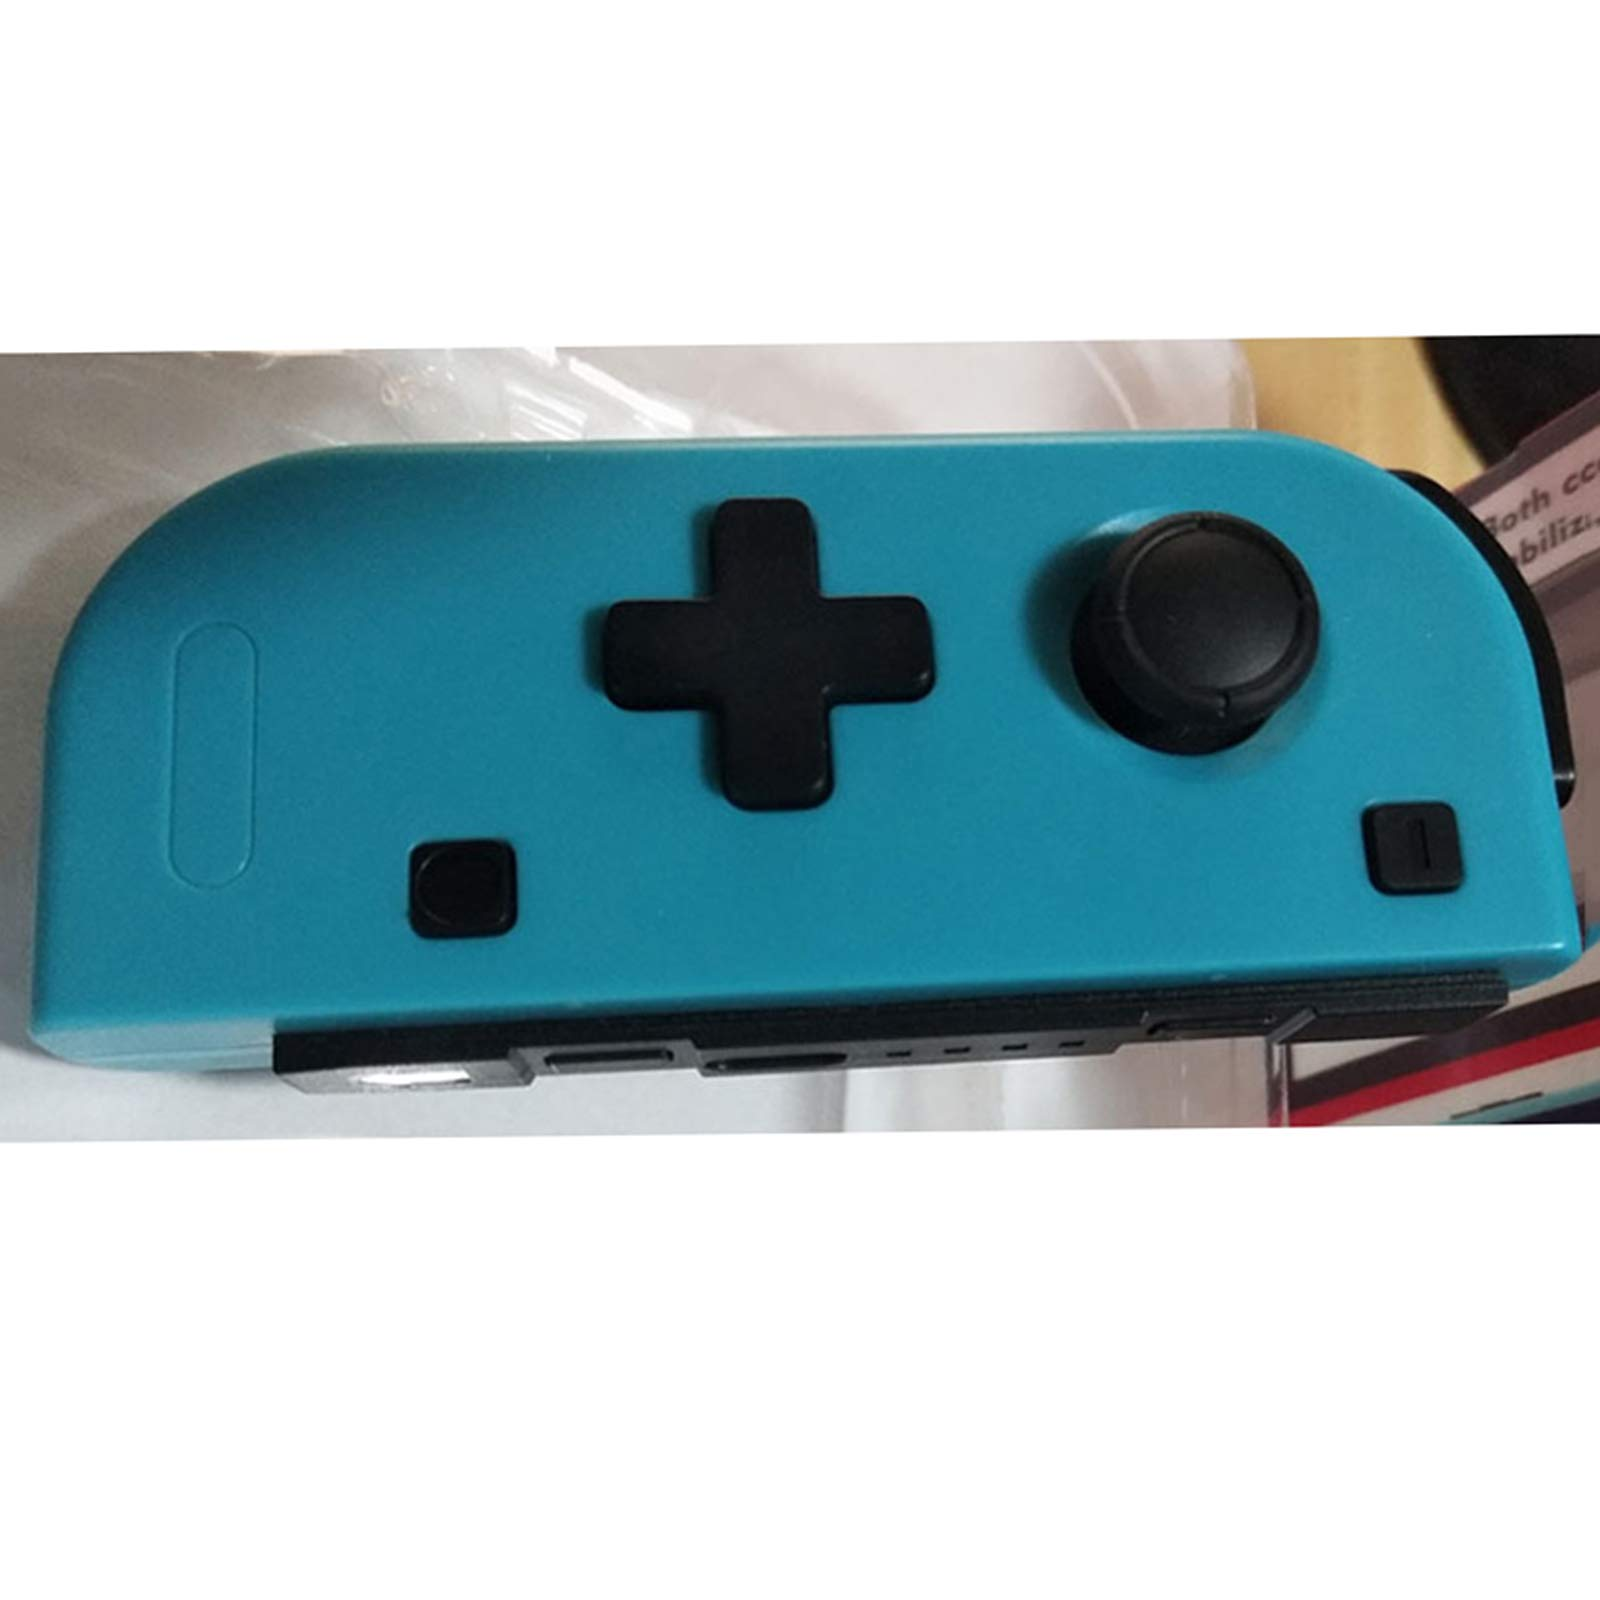 XBERSTAR Wireless Game Controller Left Right Gamepad Joystick for Nintendo Switch Console by XBERSTAR (Image #3)